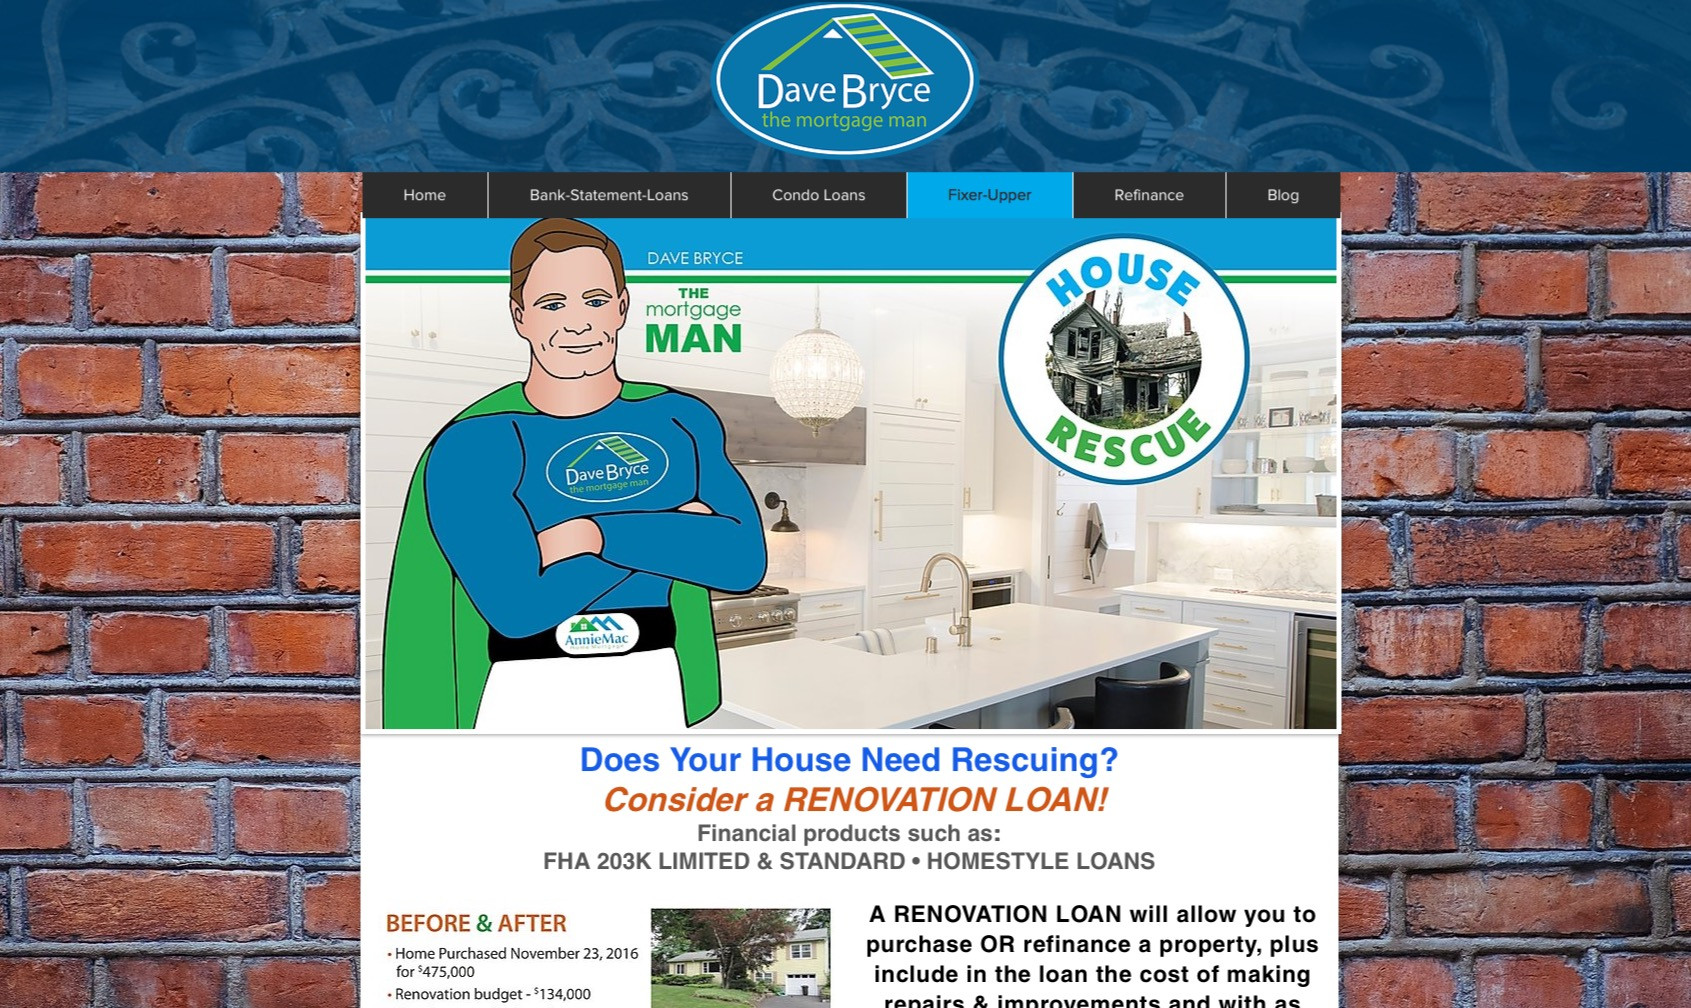 davebrycemortgage.com/fixer-upper